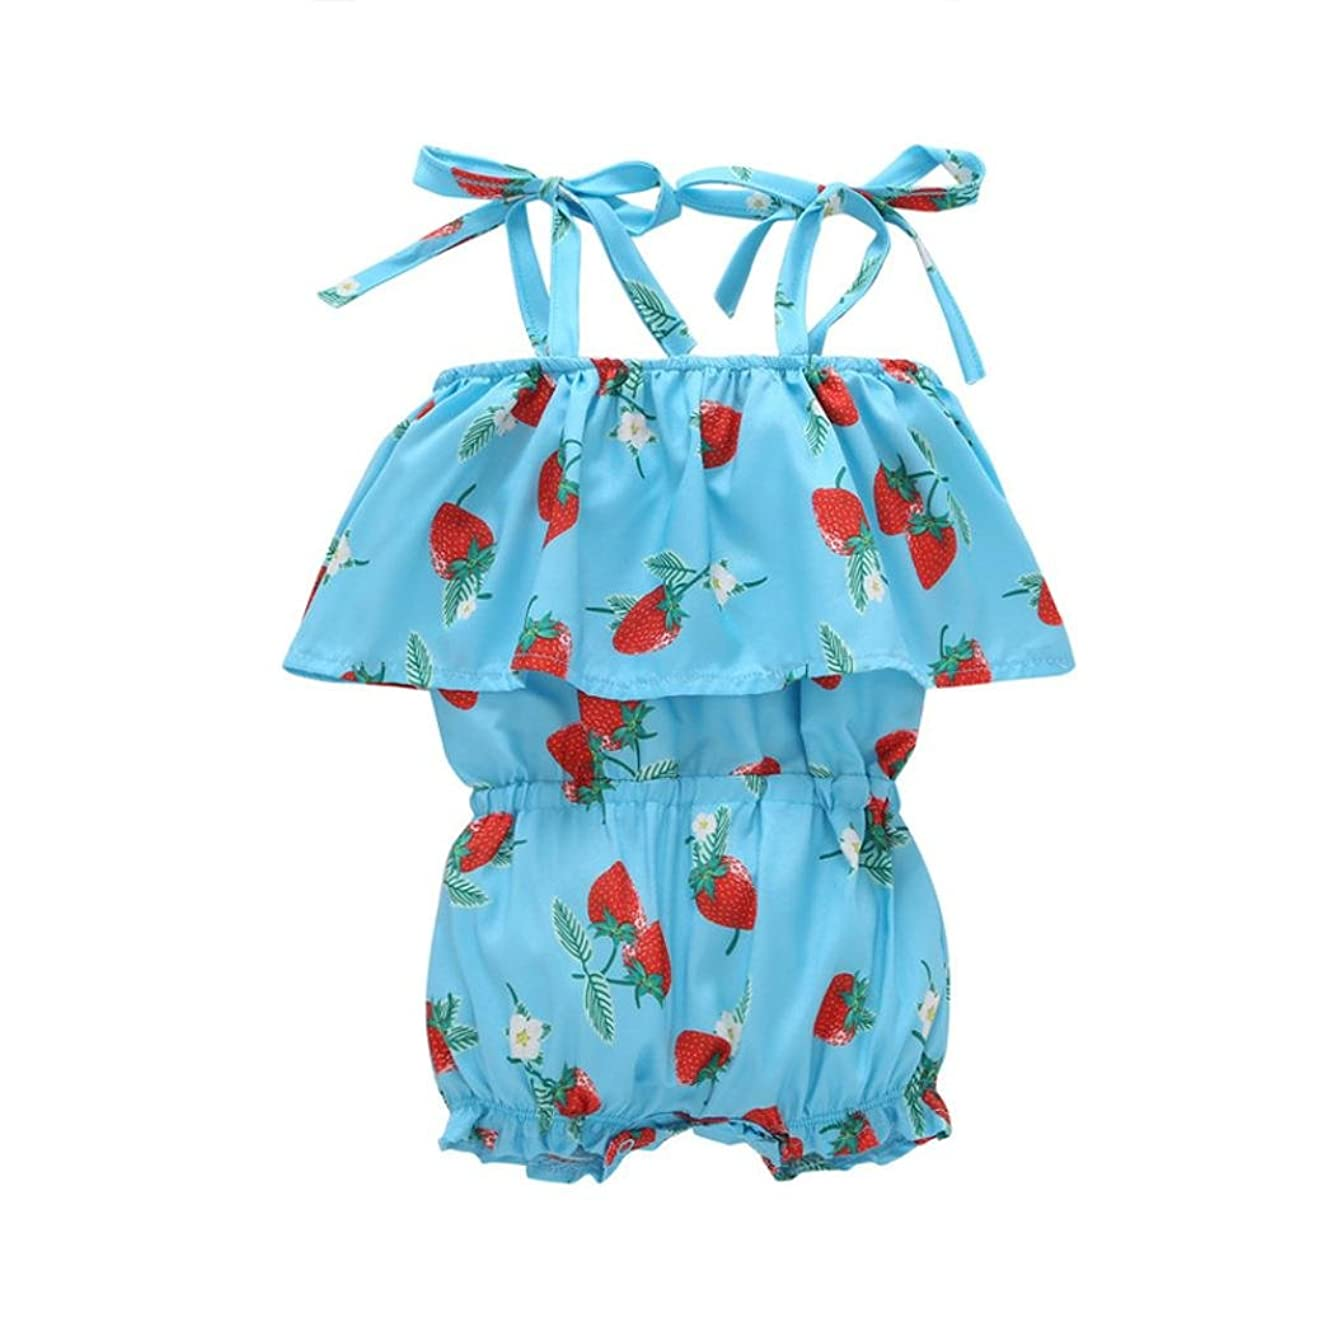 CSSD Toddler Baby Girls Sleeveless Strawberry Print Romper Playsuit Clothes Outfits